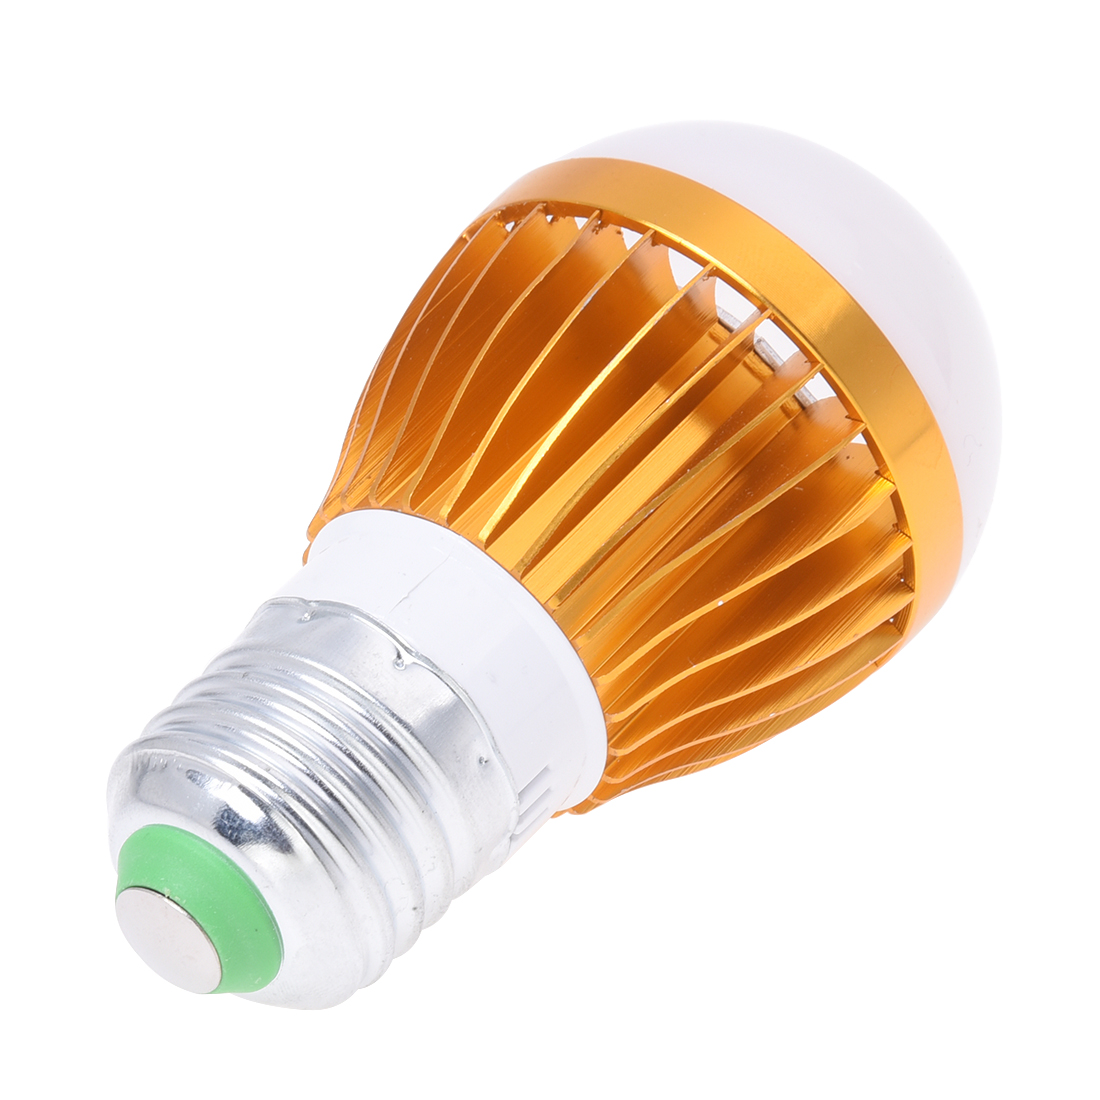 Birne Lampe E27 Wei High Power 3 Led Spotlicht Birne Lampe Strahler